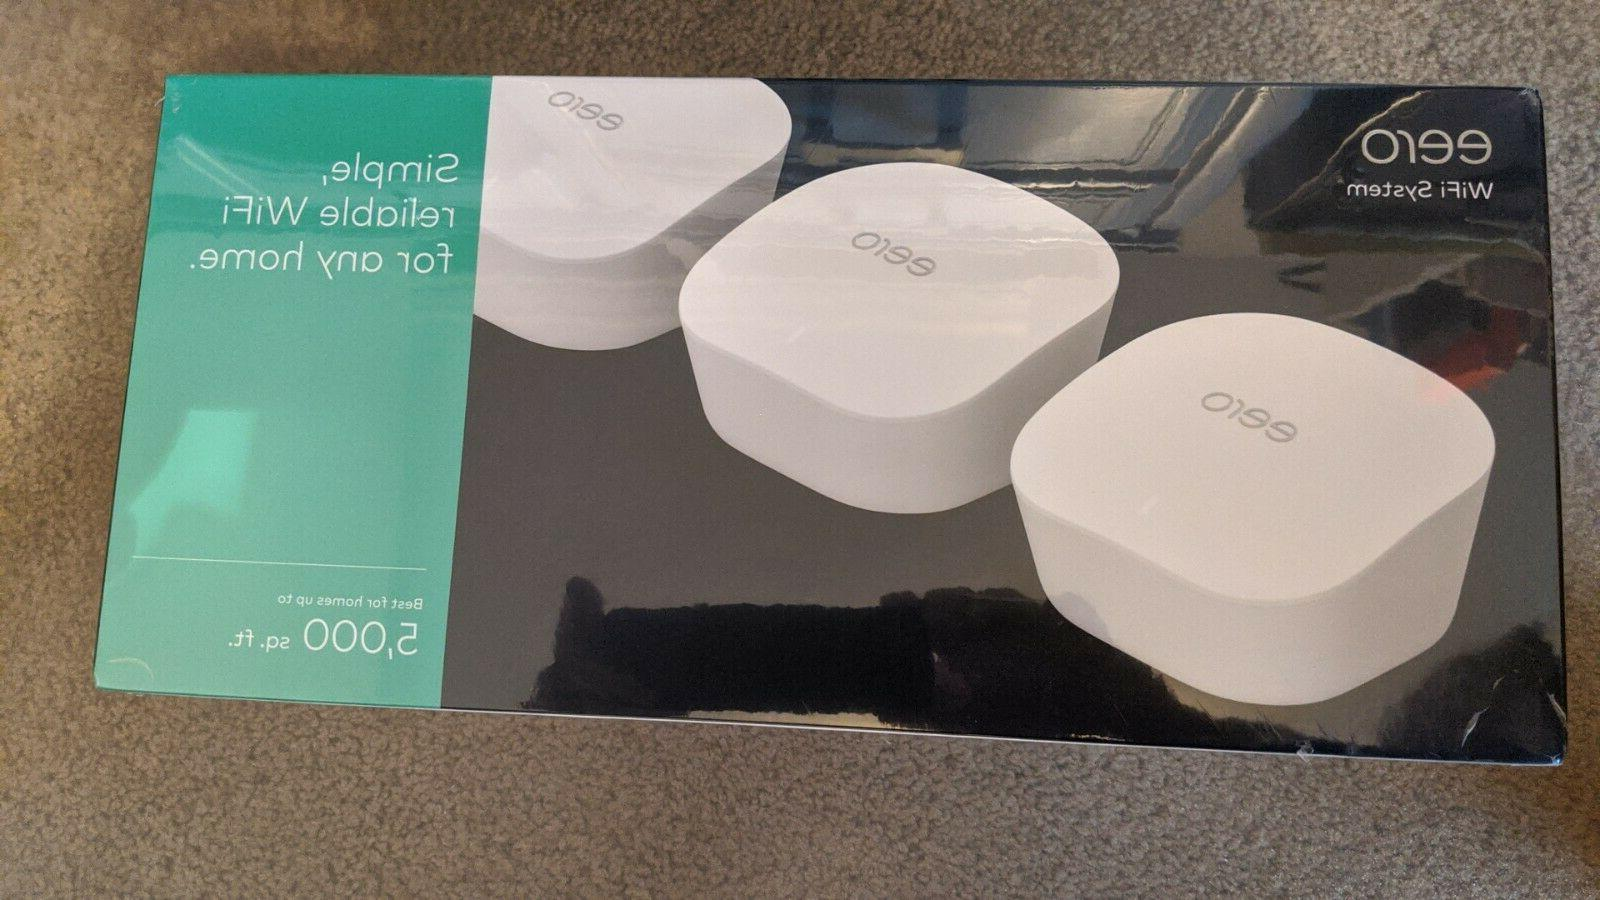 new amazon mesh wifi network system router